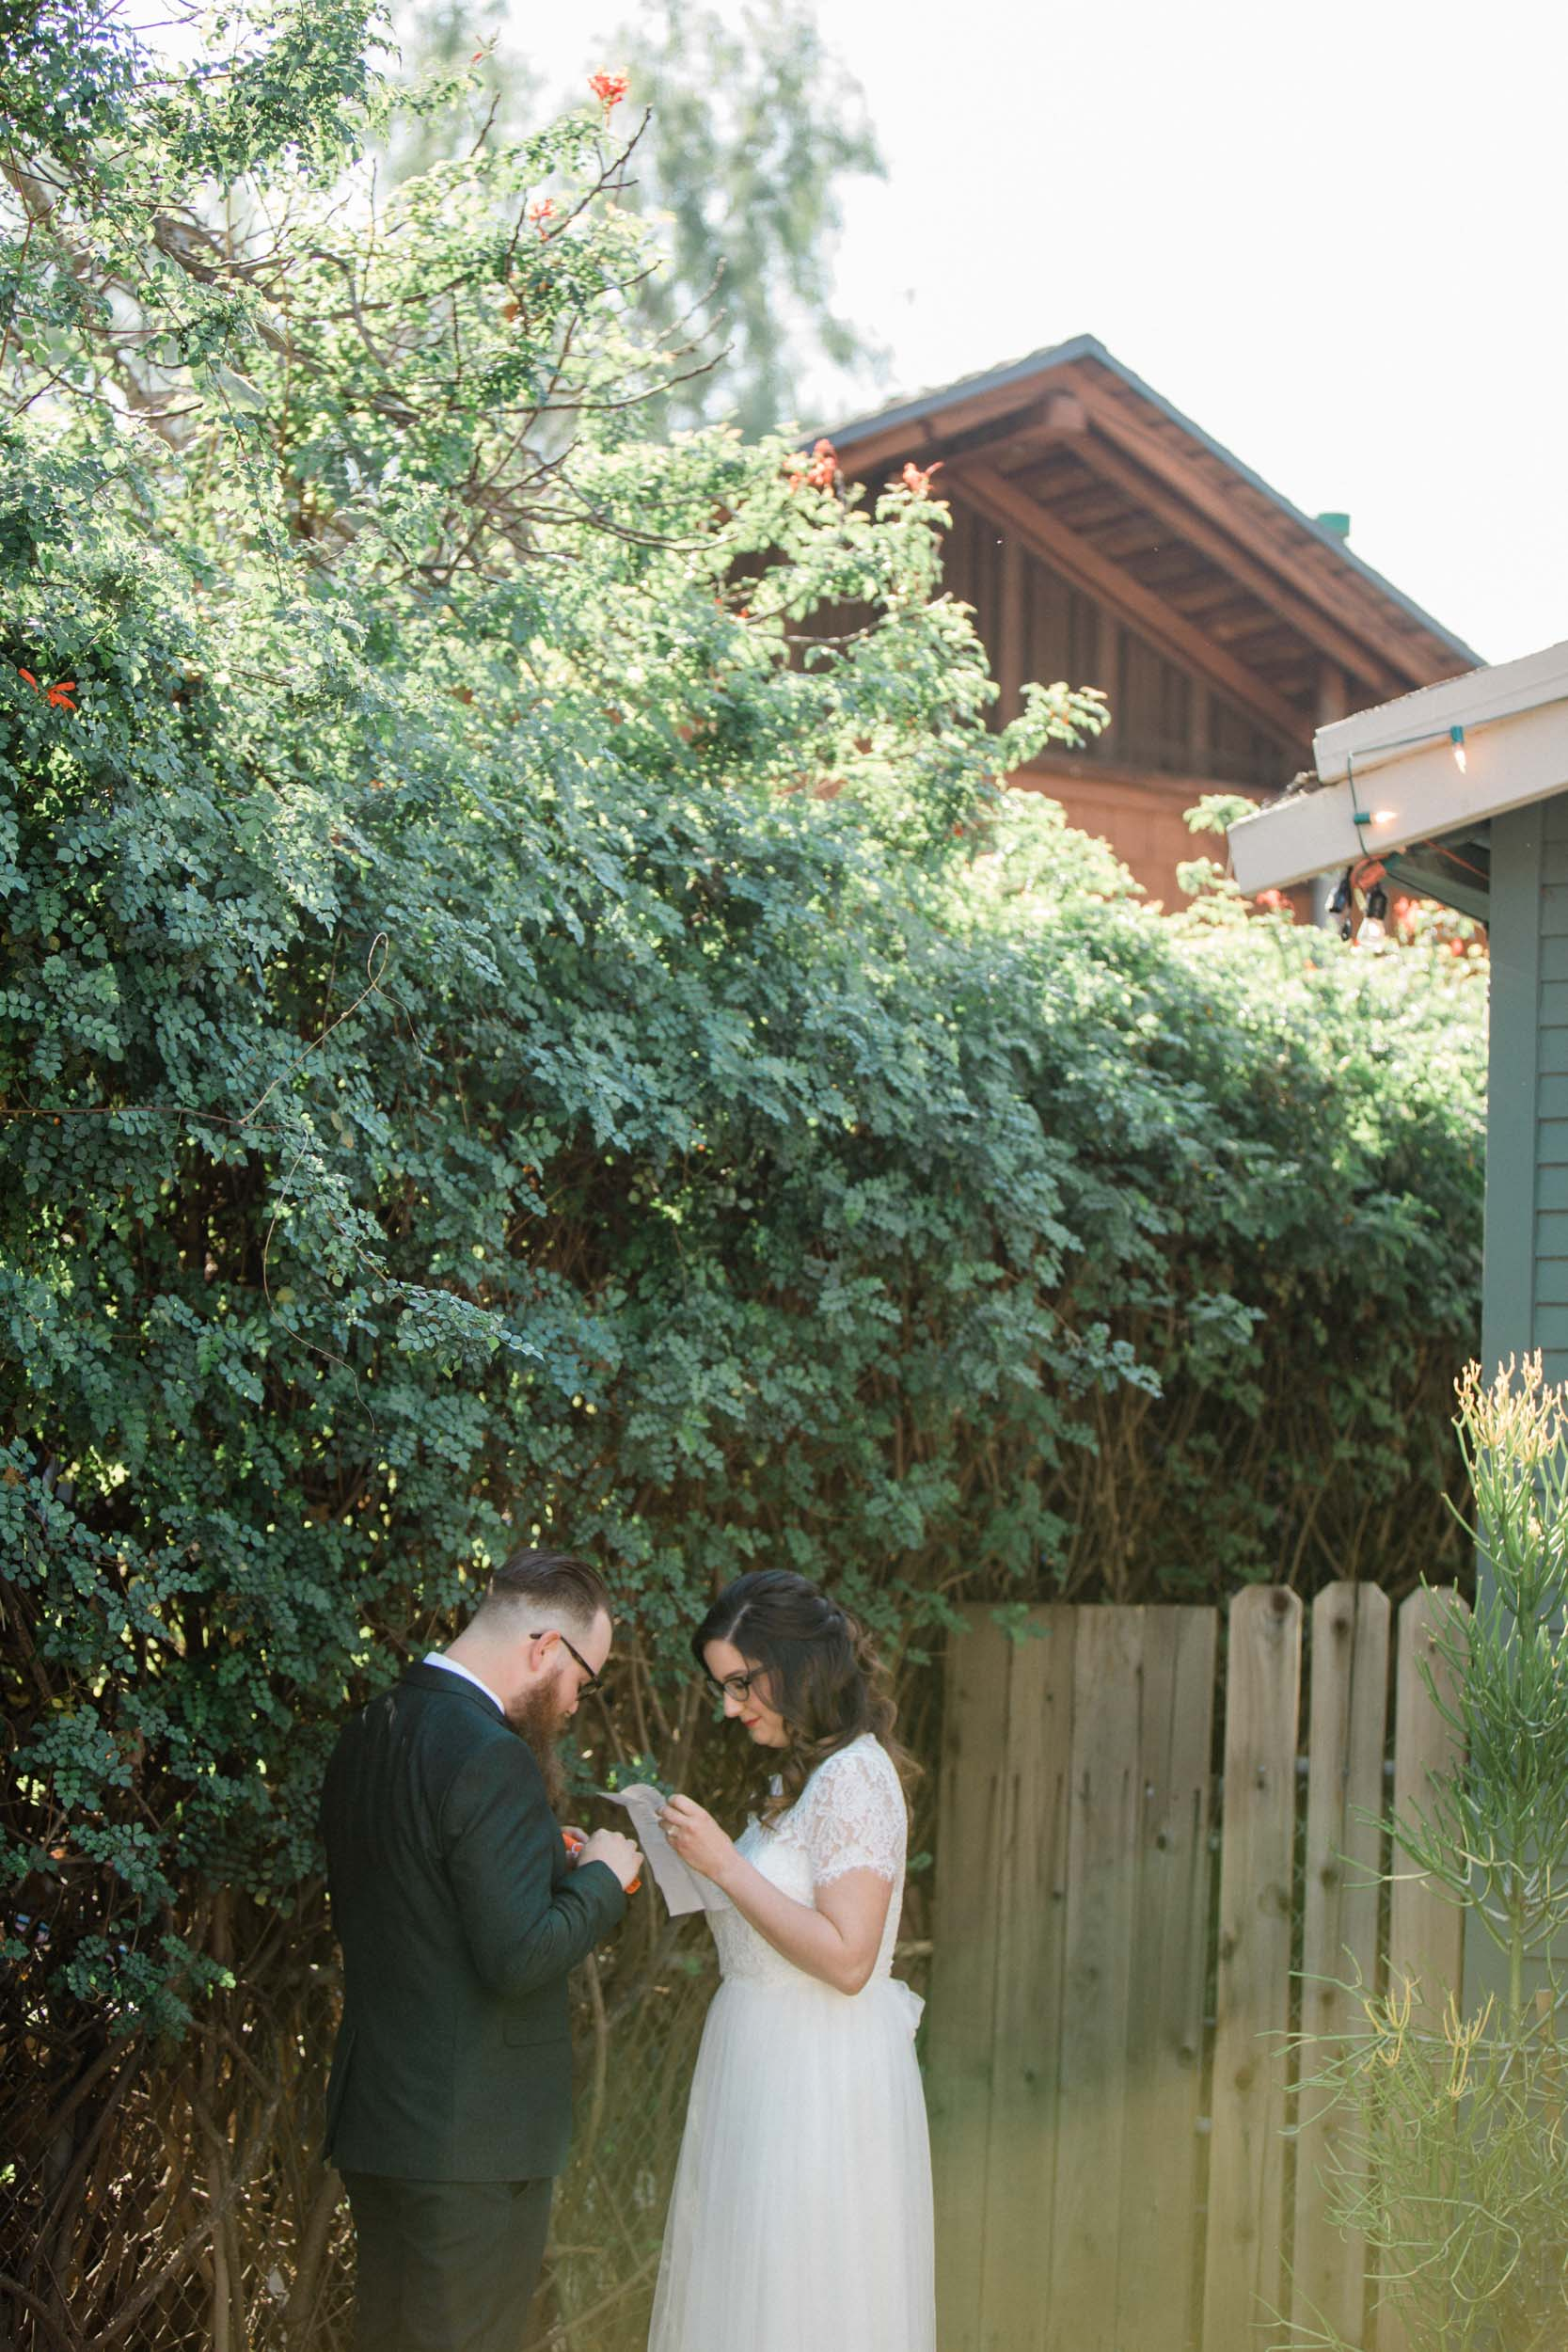 BKM-Photography-Highland-Park-Los-Angeles-Backyard-DIY-Wedding-0056.jpg